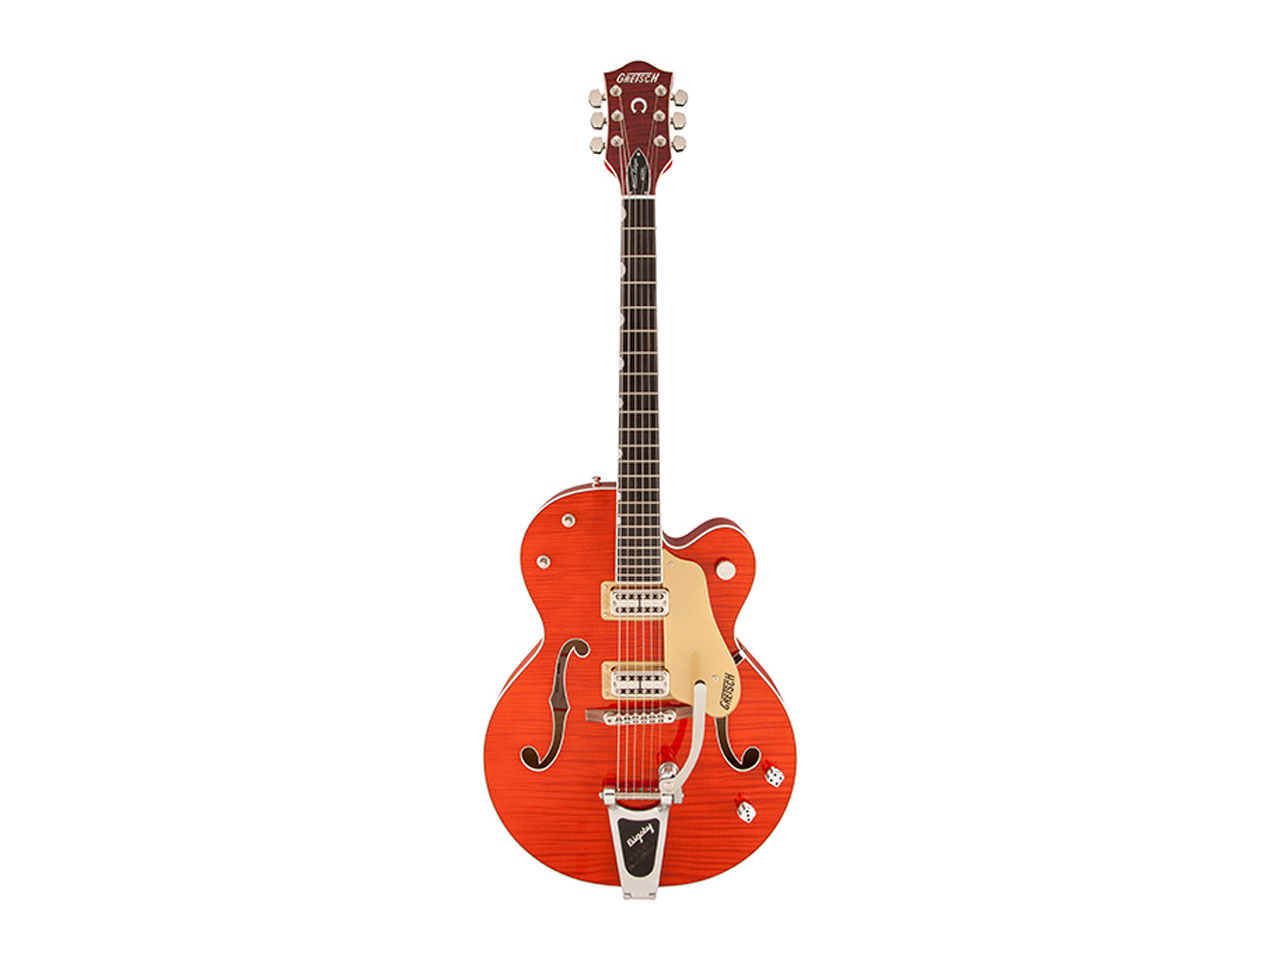 Gretsch G6120SSL Brian Setzer Nashville / Orange Lacquer